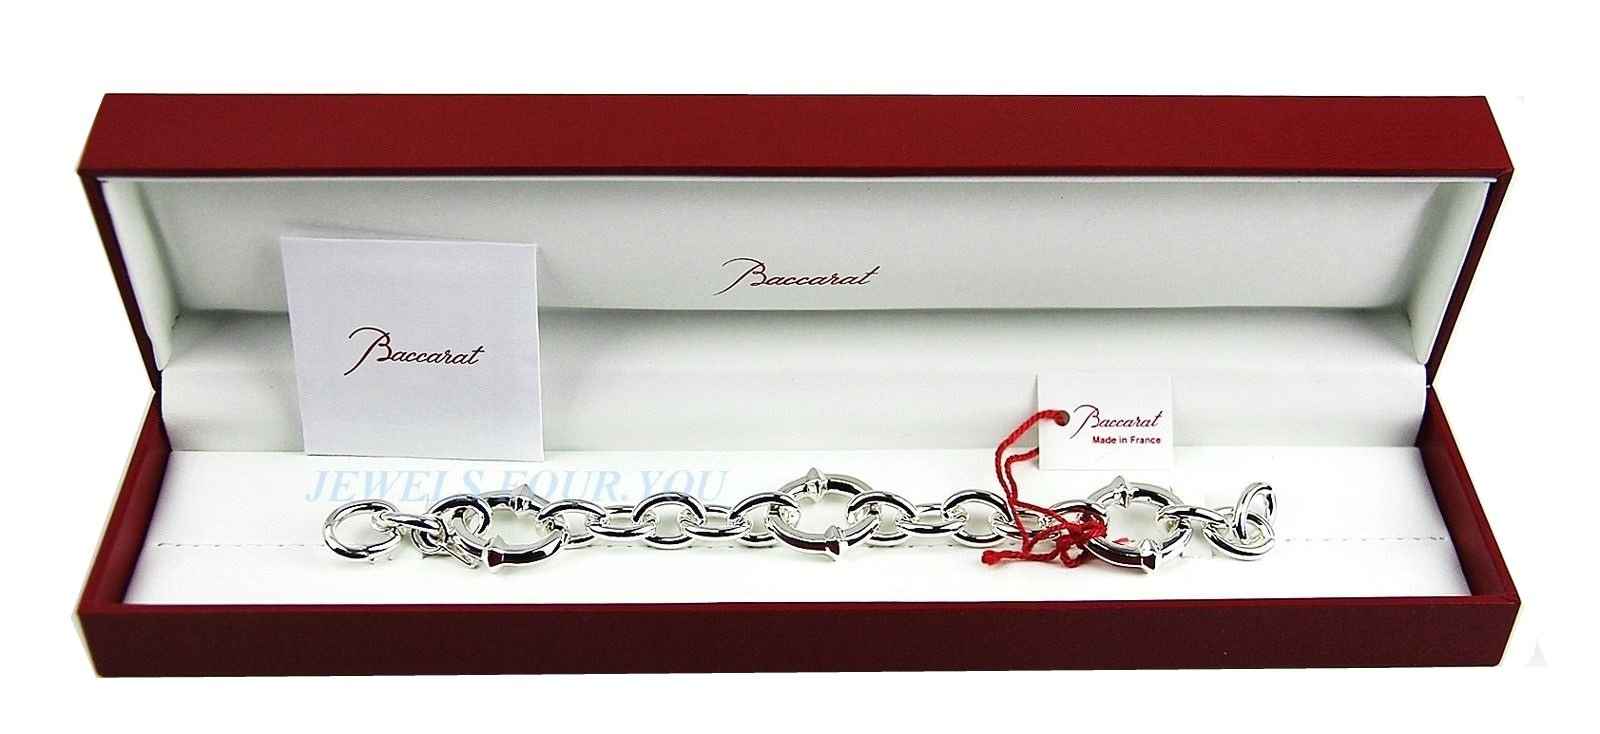 BACCARAT JEWELRY B MANIA SOLID STERLING SILVER 8 3/4'' BRACELET